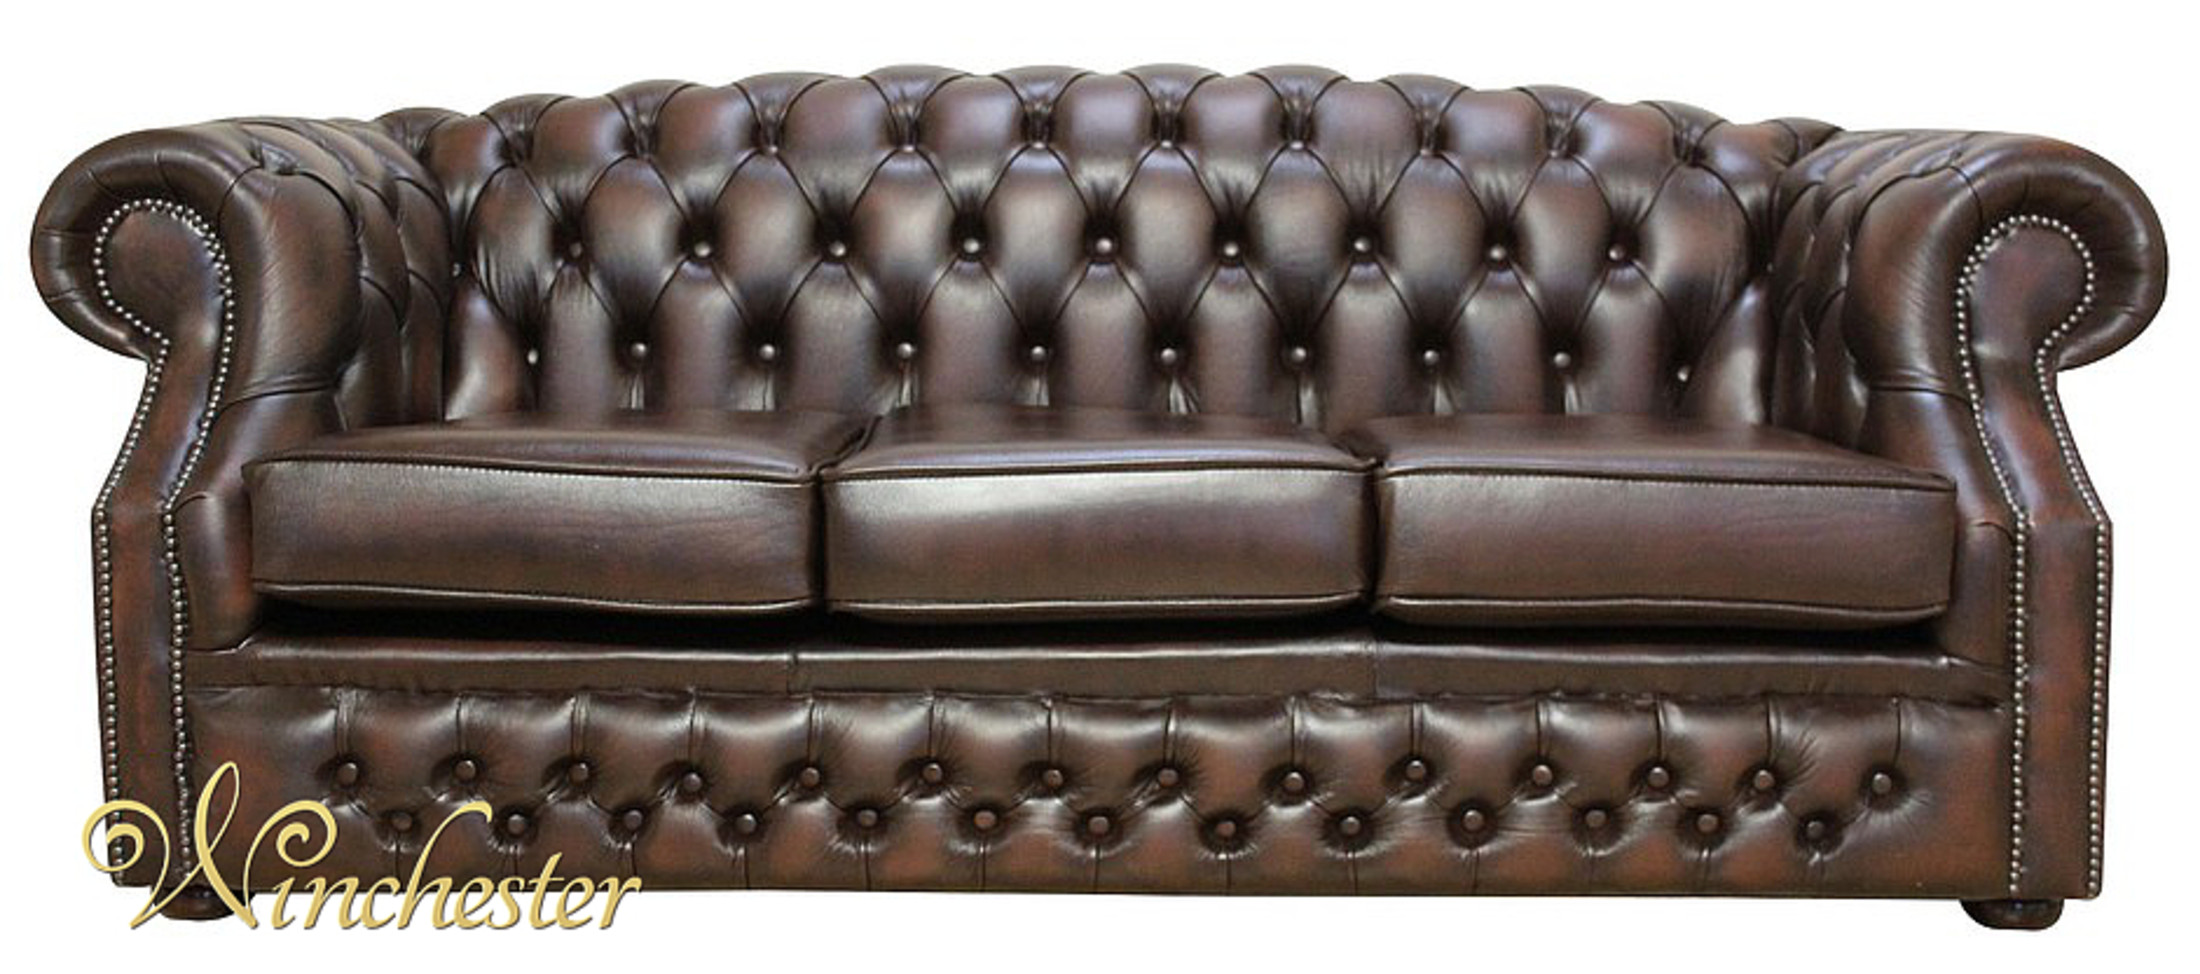 Chesterfield Oxford 3 Seater Antique Brown Leather Sofa Offer